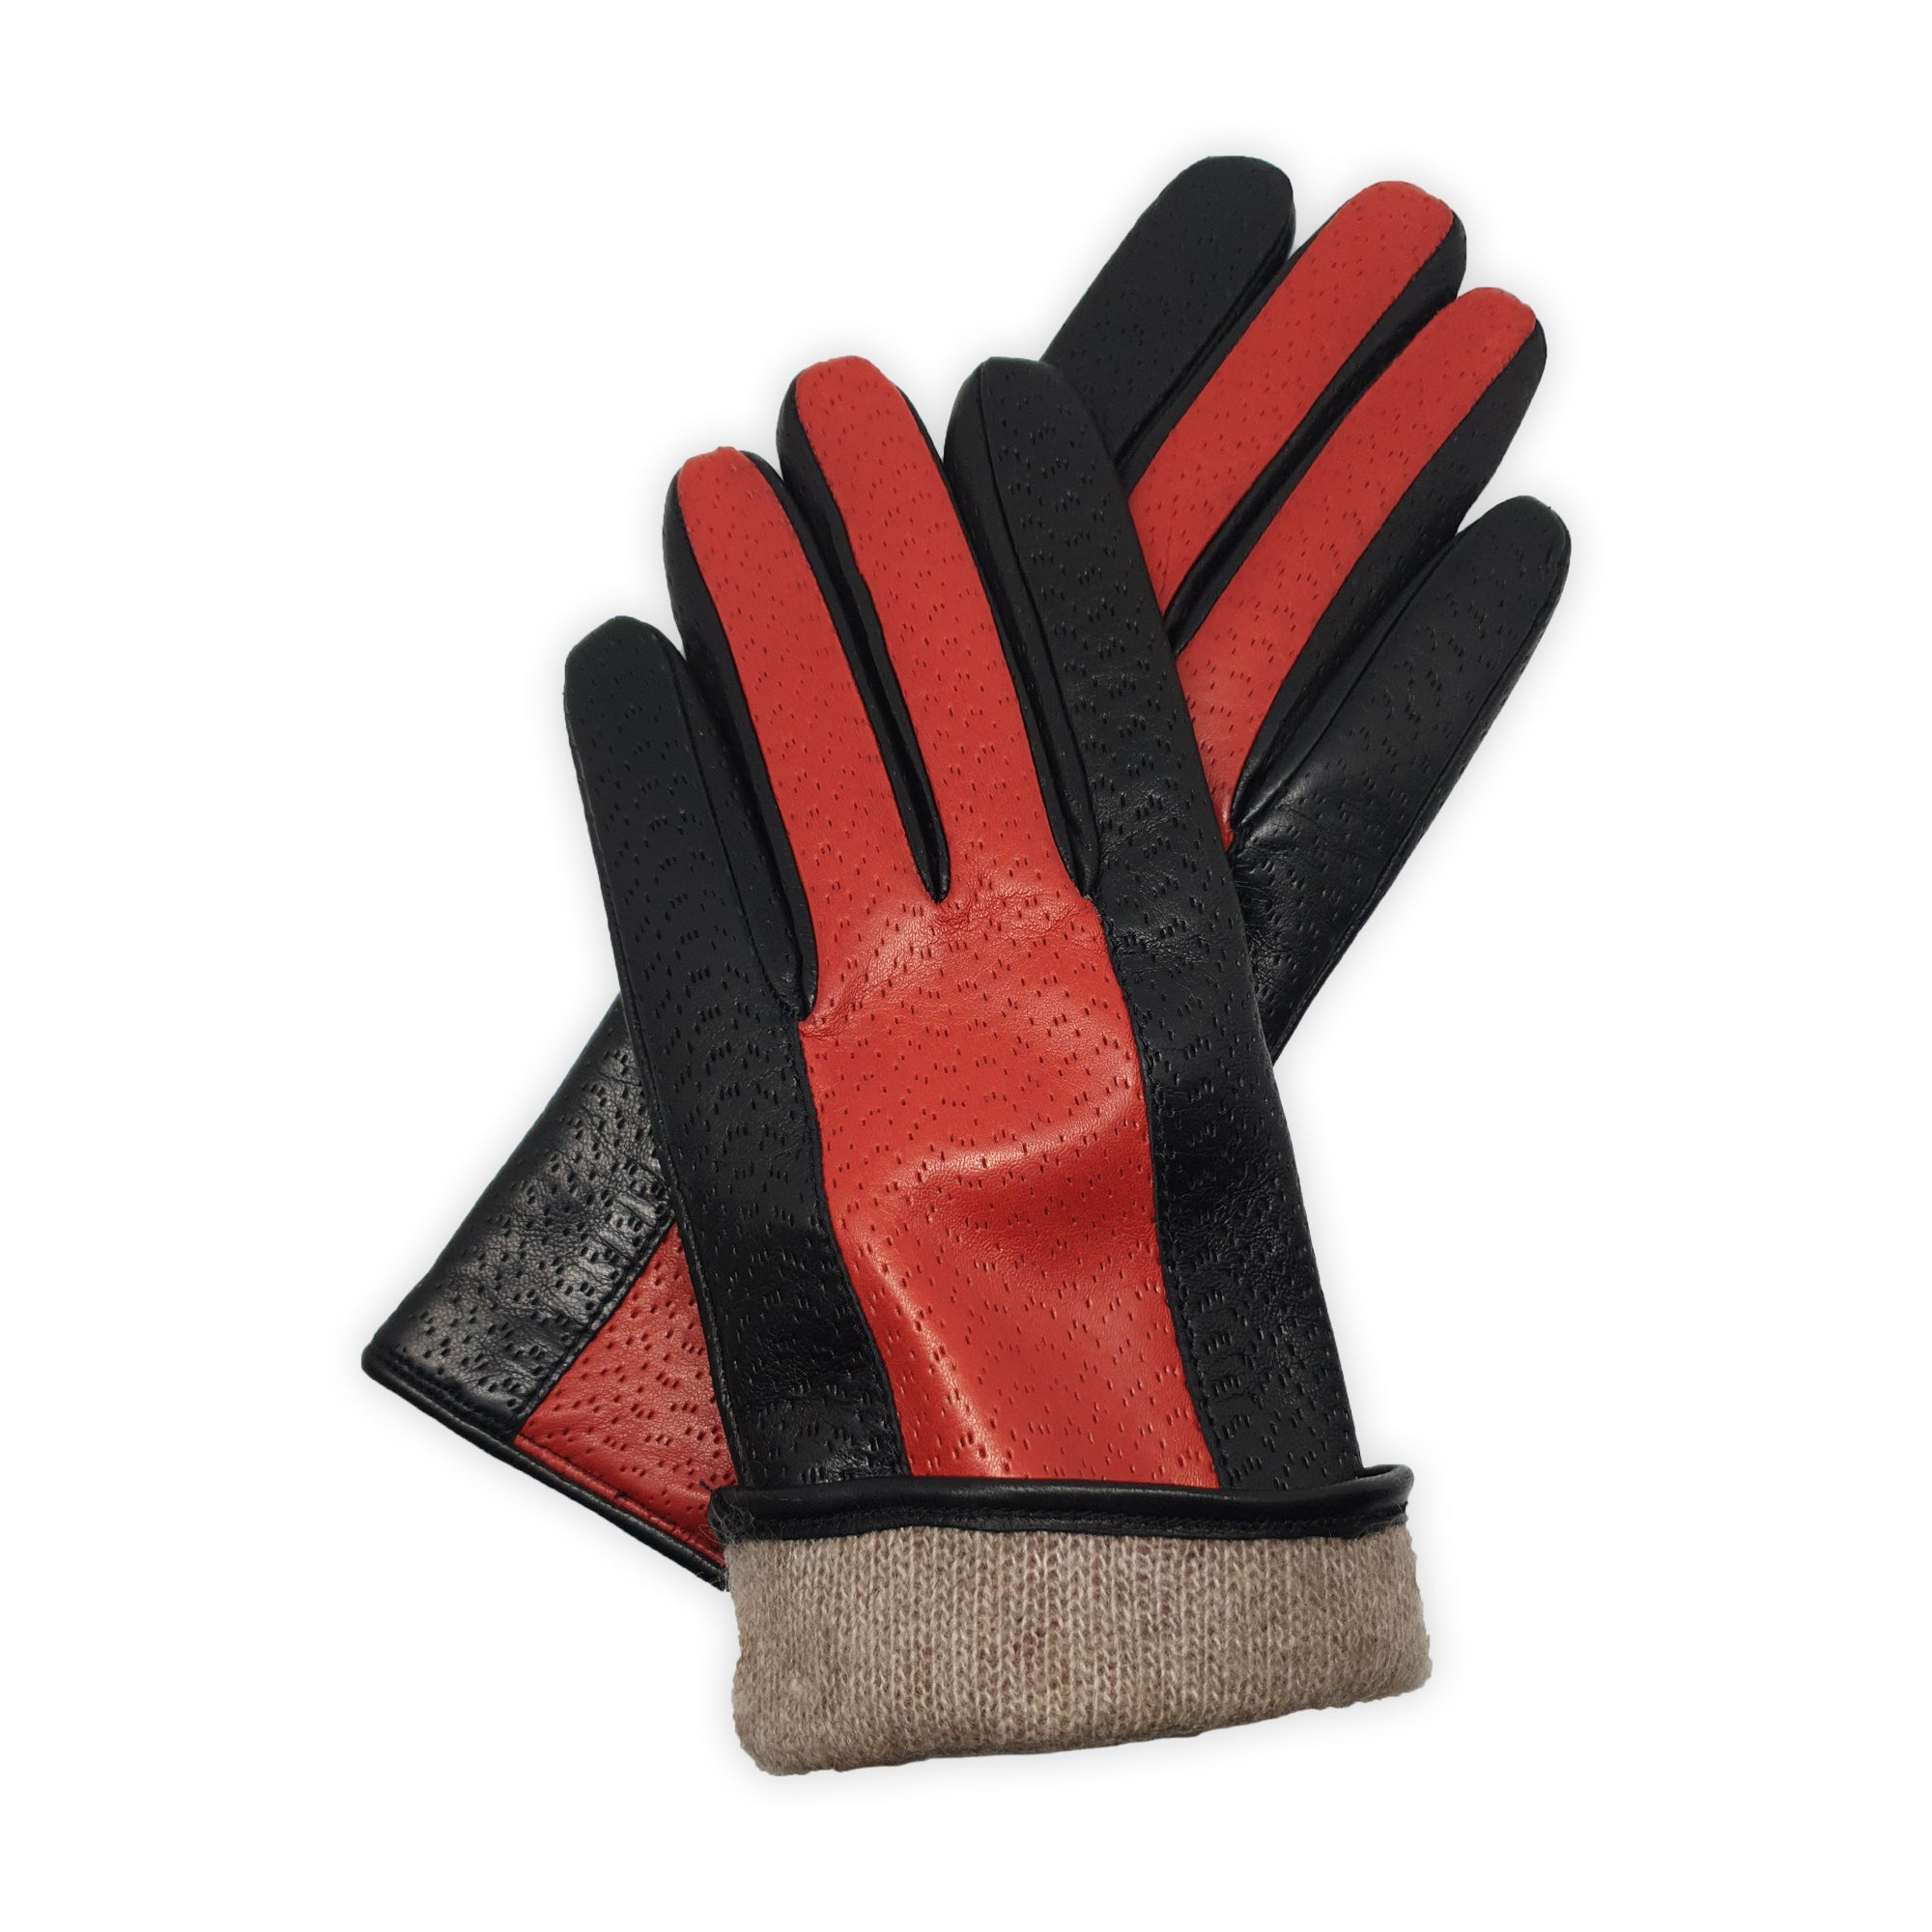 Real leather gloves lined in two-tone 100% cashmere hammered Palermo model